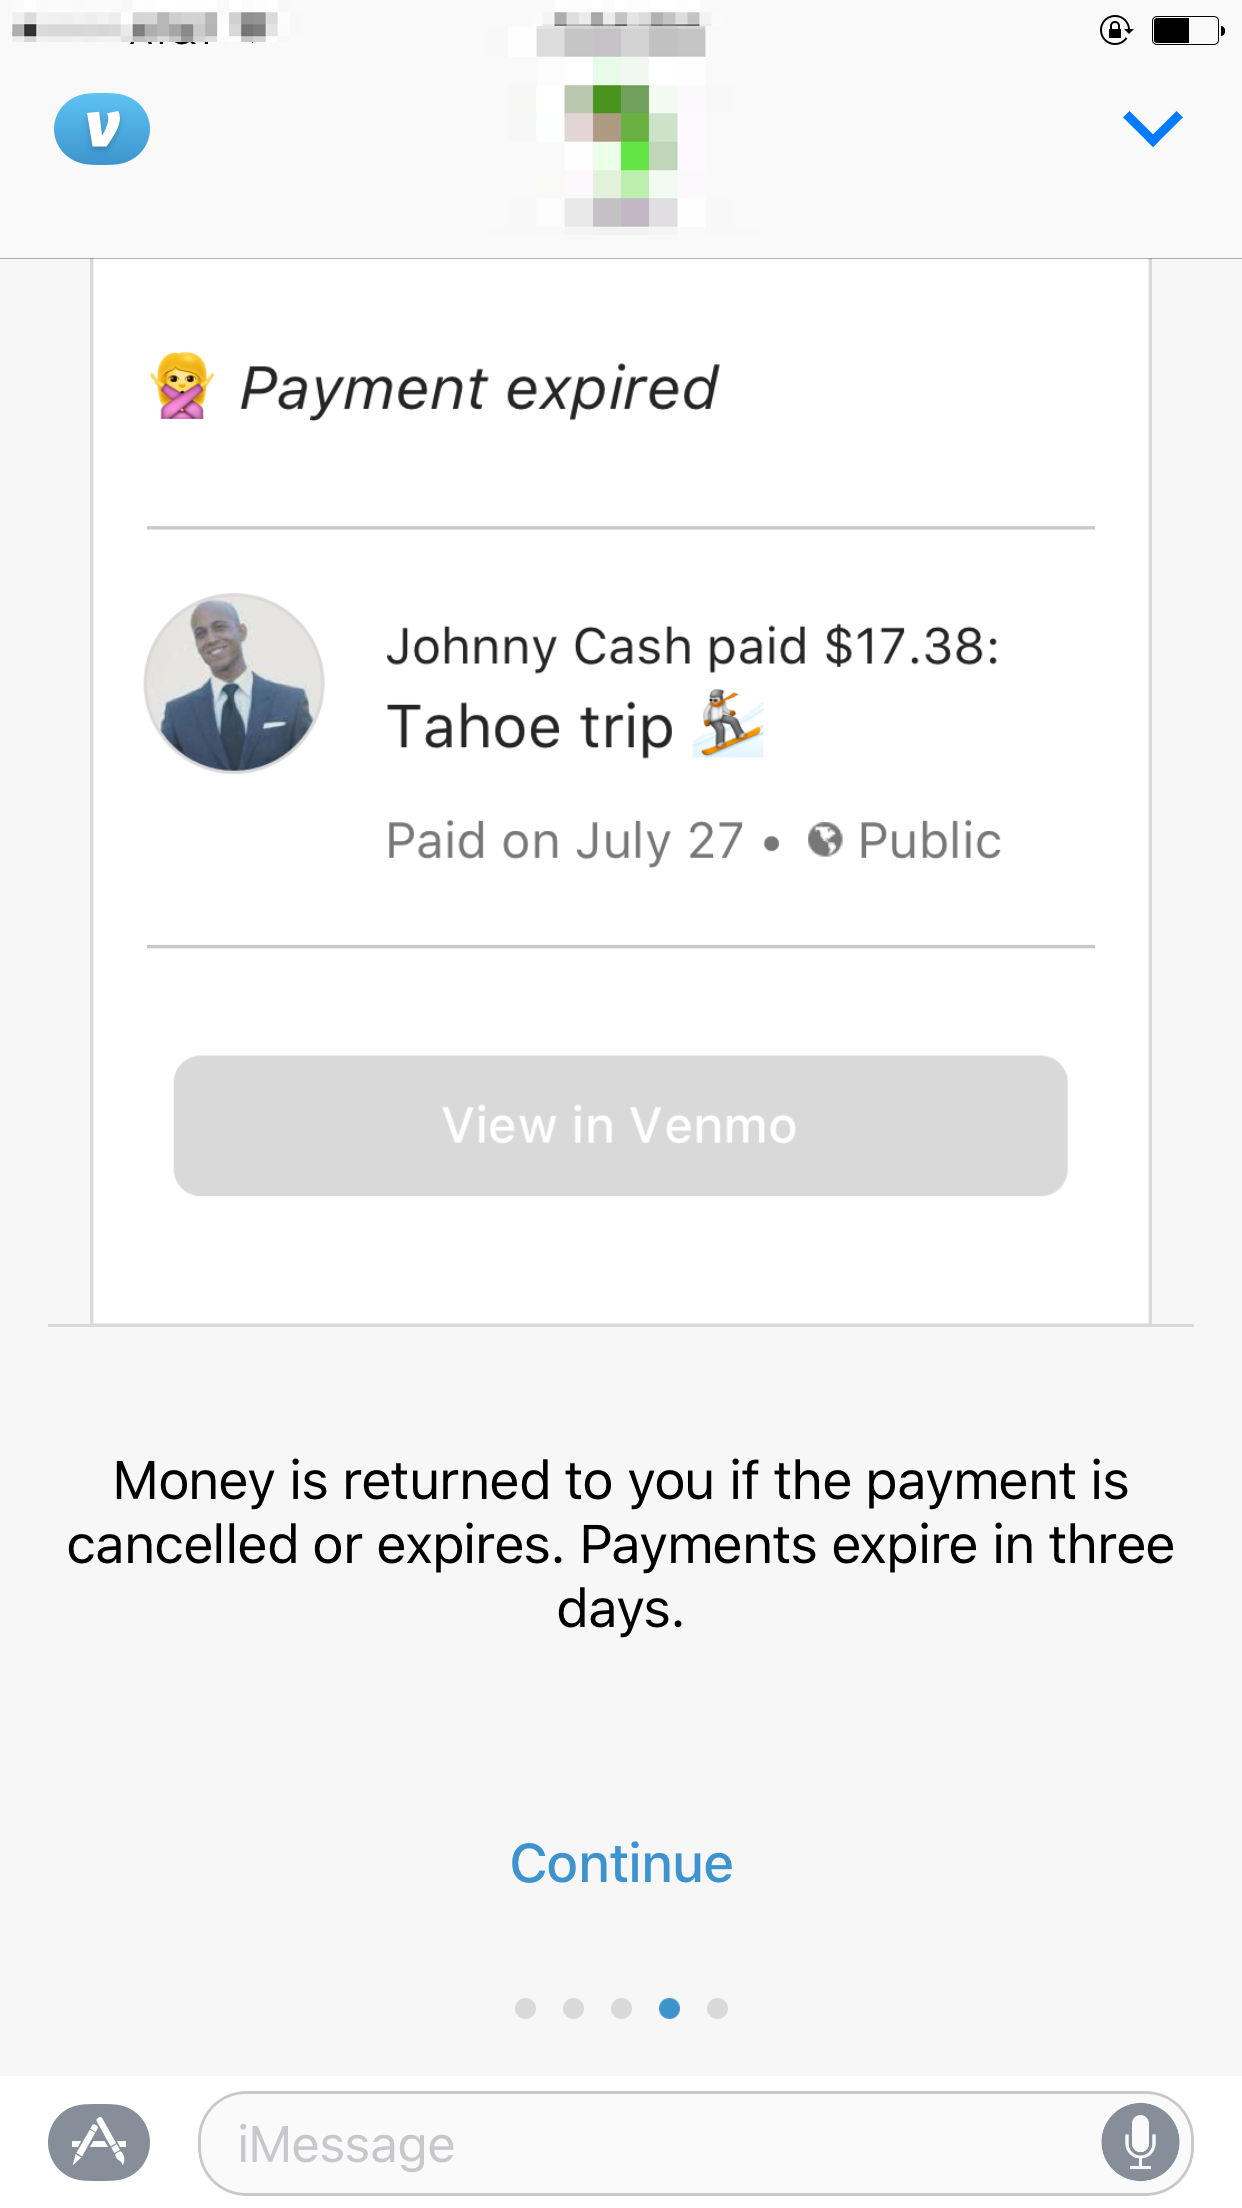 IMessage Payments How It Works Venmo - Send invoice after payment received